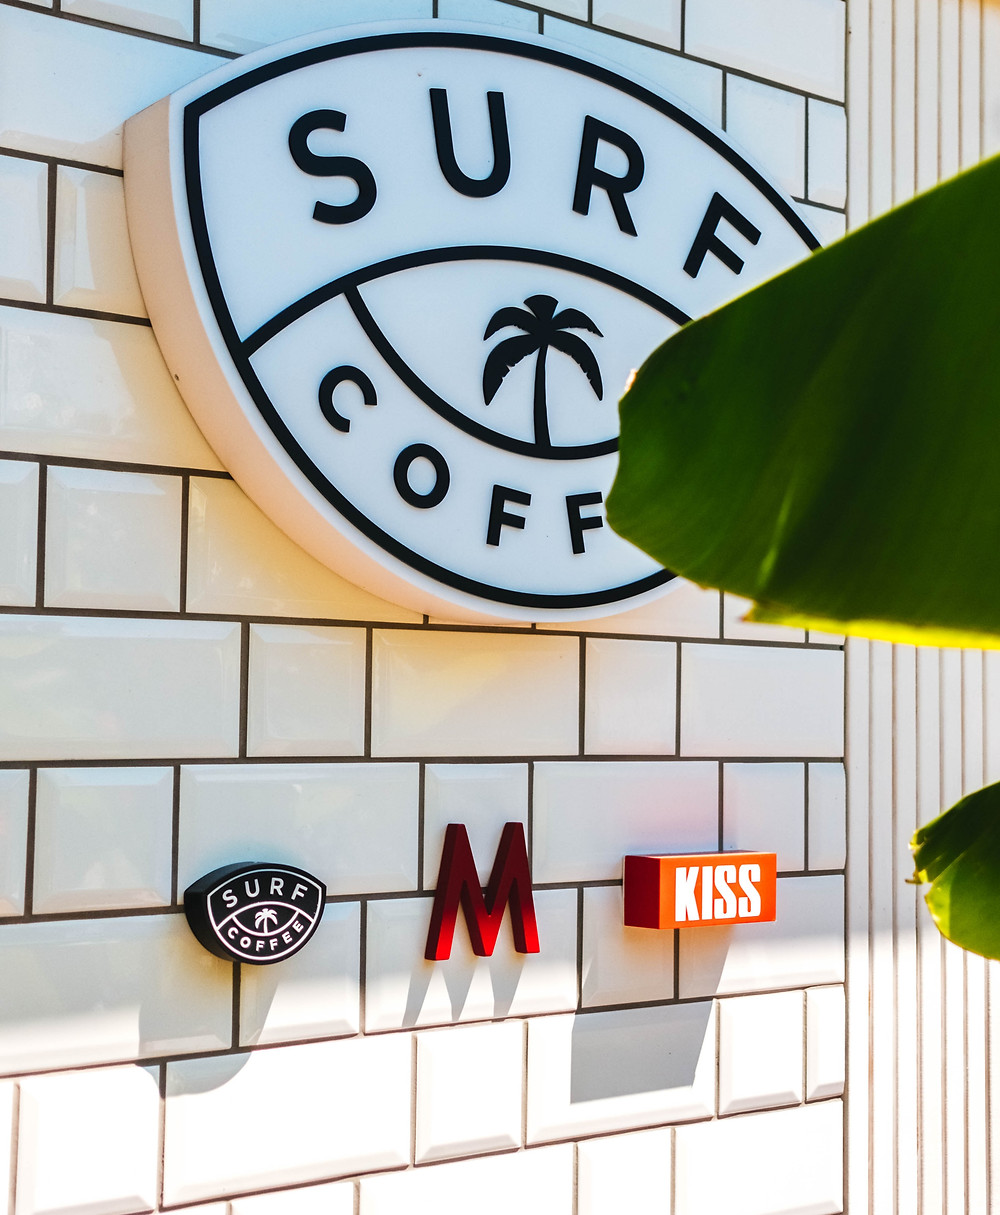 Surf Coffee shop casual location